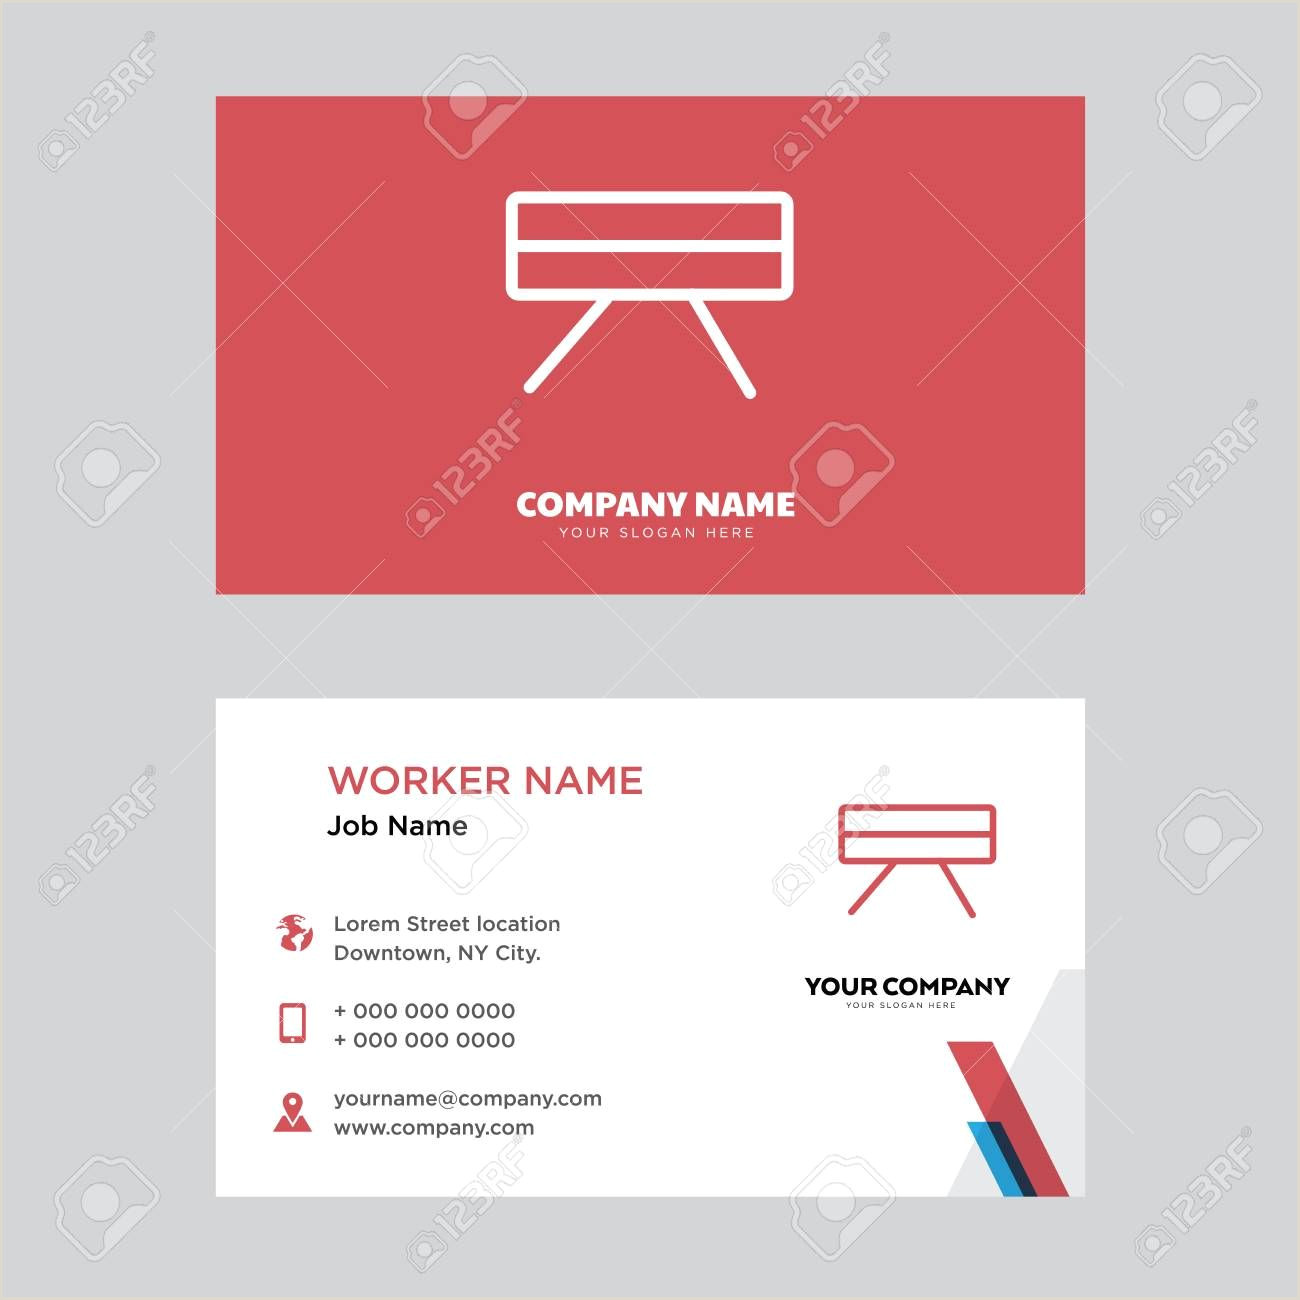 How To Design Business Cards On Word Table Business Card Design Template Visiting For Your